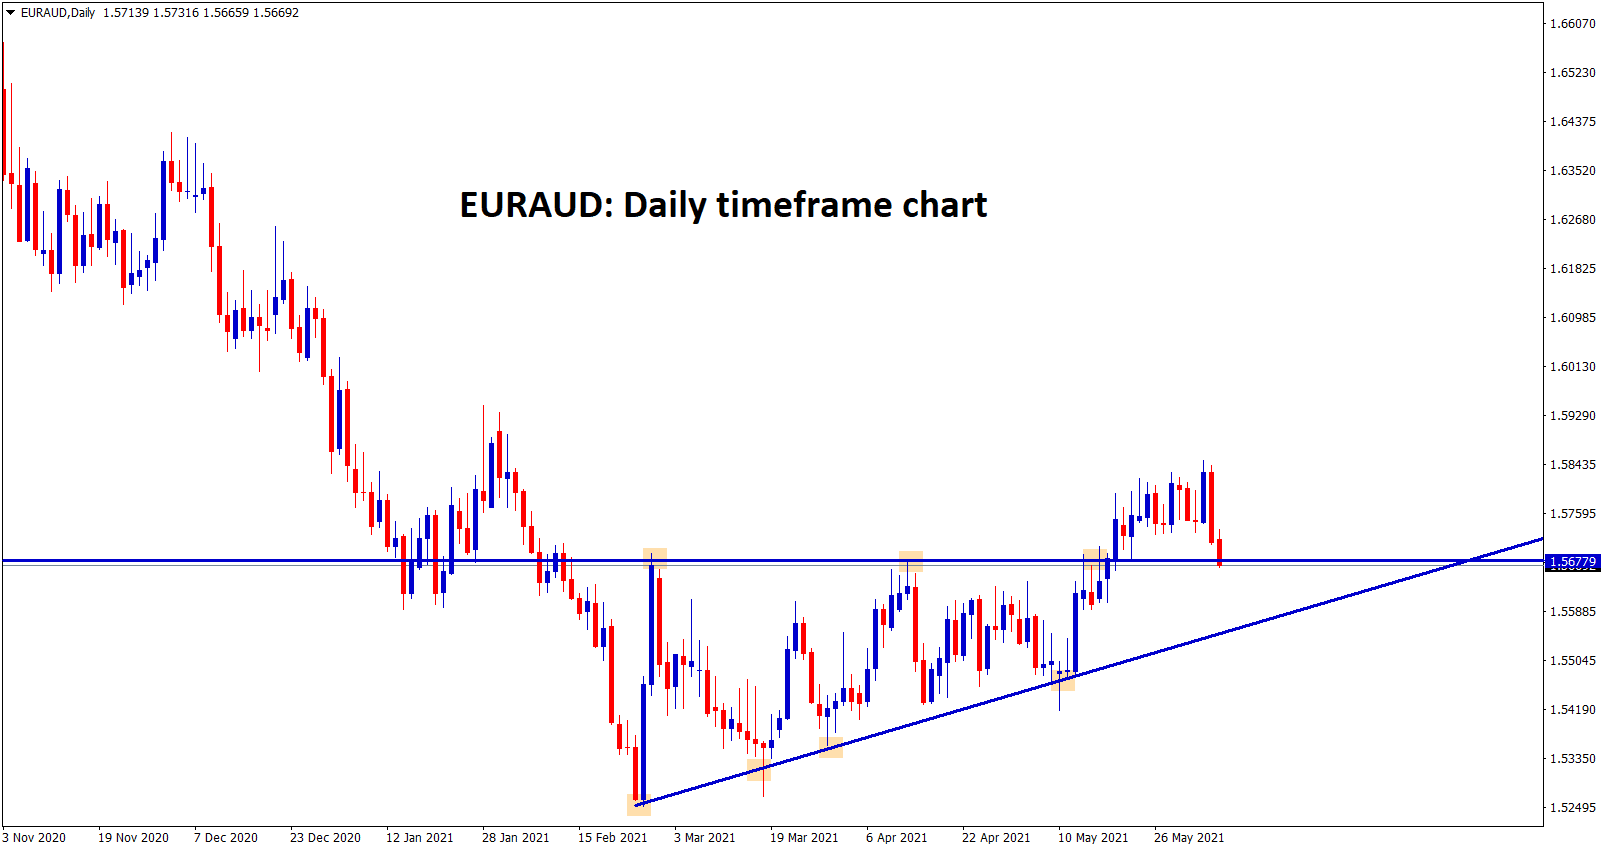 EURAUD reached the retest zone broken level of the Ascending Triangle